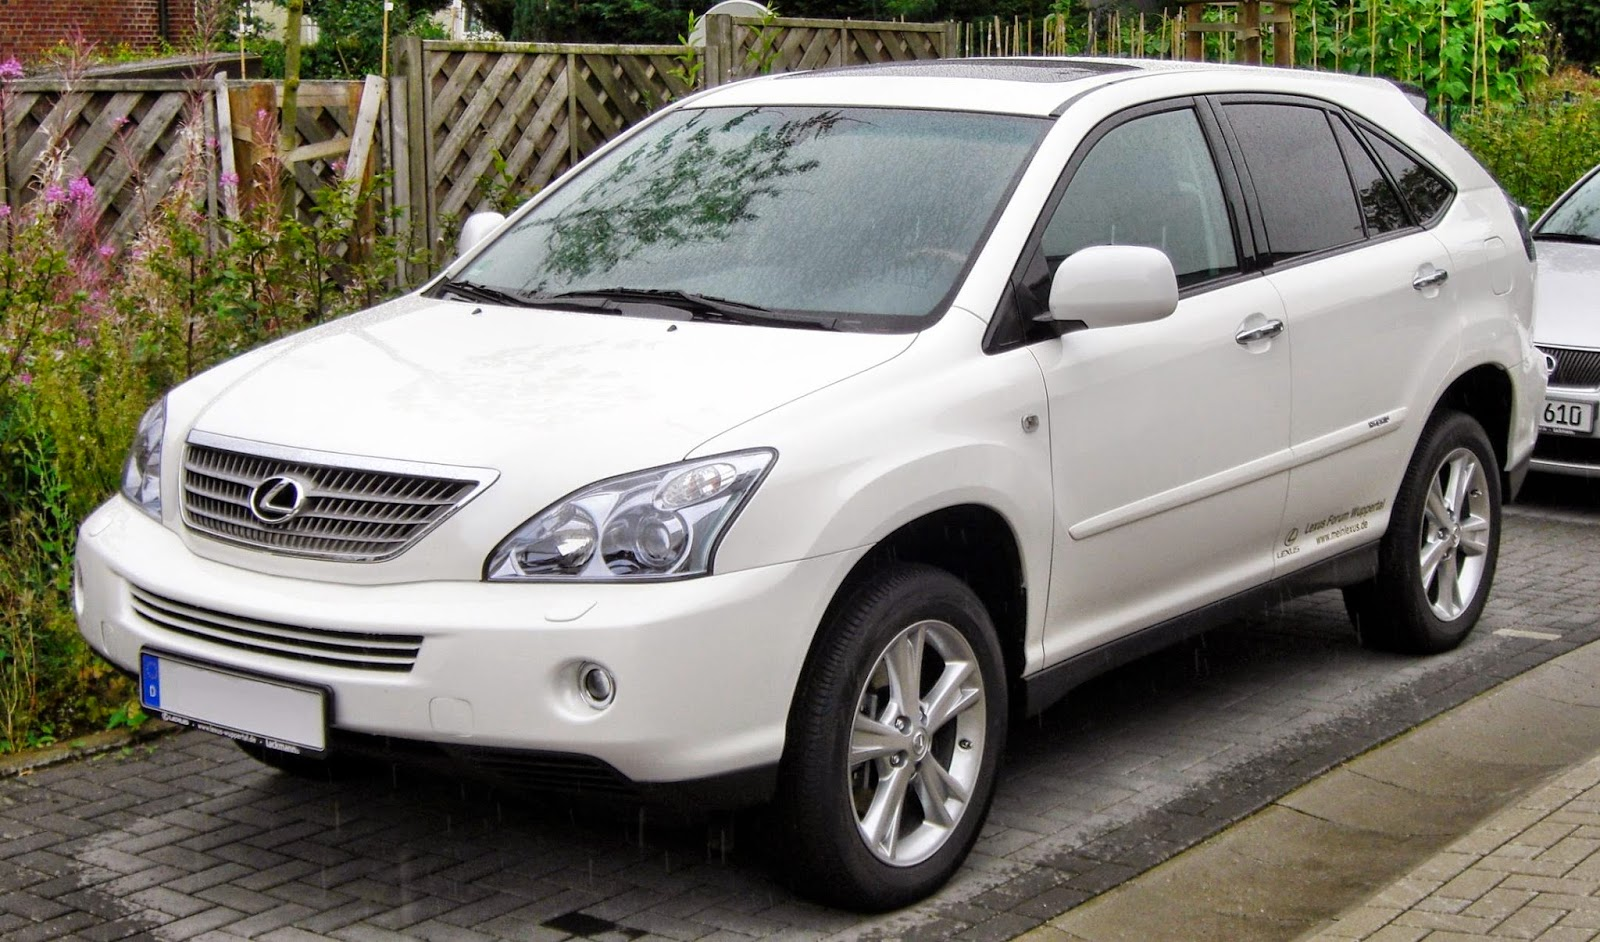 The RX 400h, the first hybrid version of Lexus' best-selling vehicle, debuted in 2004.